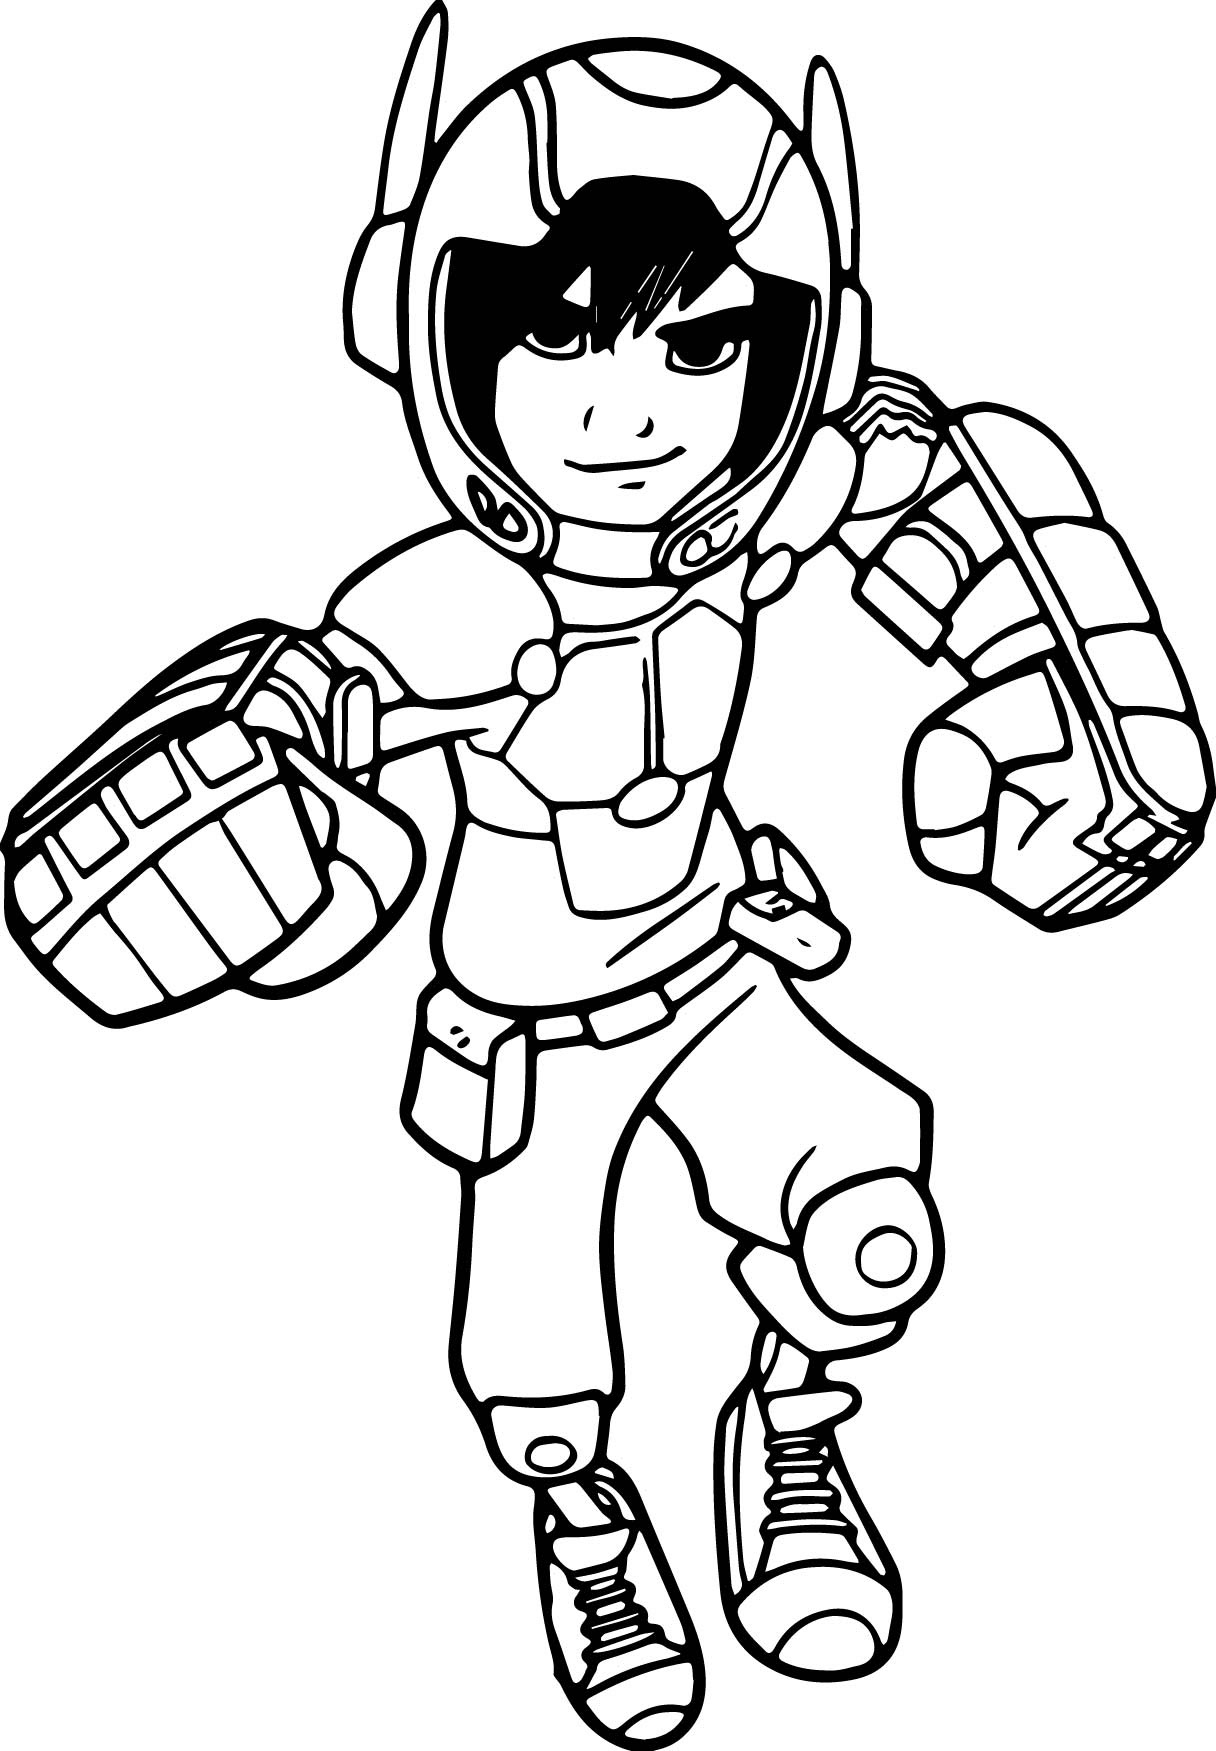 big hero 6 coloring pages – ourwayofpassion.com | 1751x1216